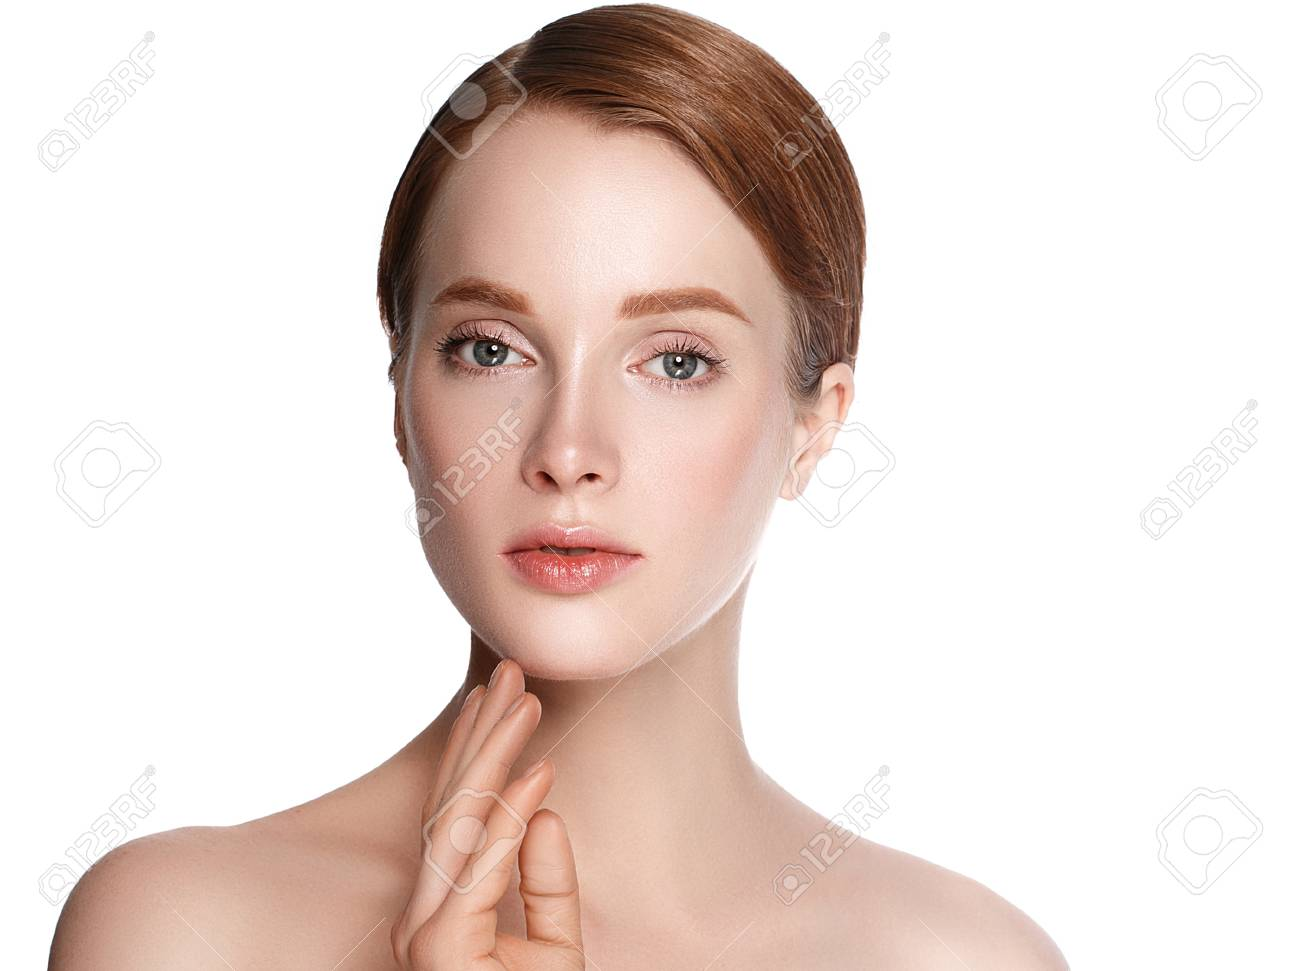 Beauty Woman face with hand Portrait. Beautiful model Girl with Perfect Fresh Clean Skin color lips purple red. Blonde brunette short hair Youth and Skin Care Concept. Isolated on a white background - 79637990